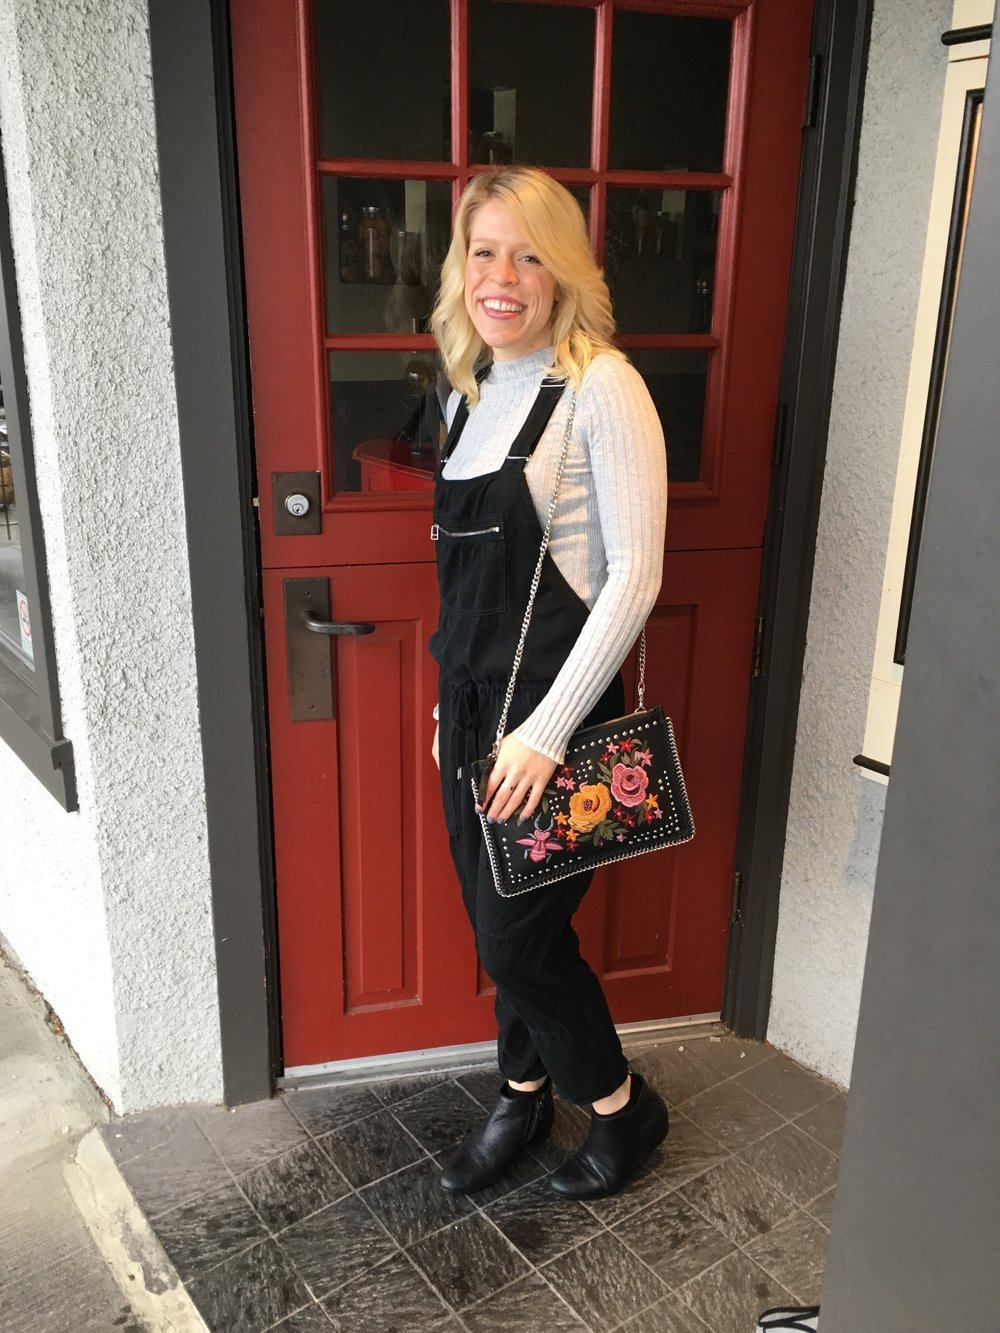 Topshop  Ribbed Turtleneck,  Aritzia  Overalls,  Sam Edelman  Booties, Topshop Embroidered Purse,  Dior Addict Lip Gloss